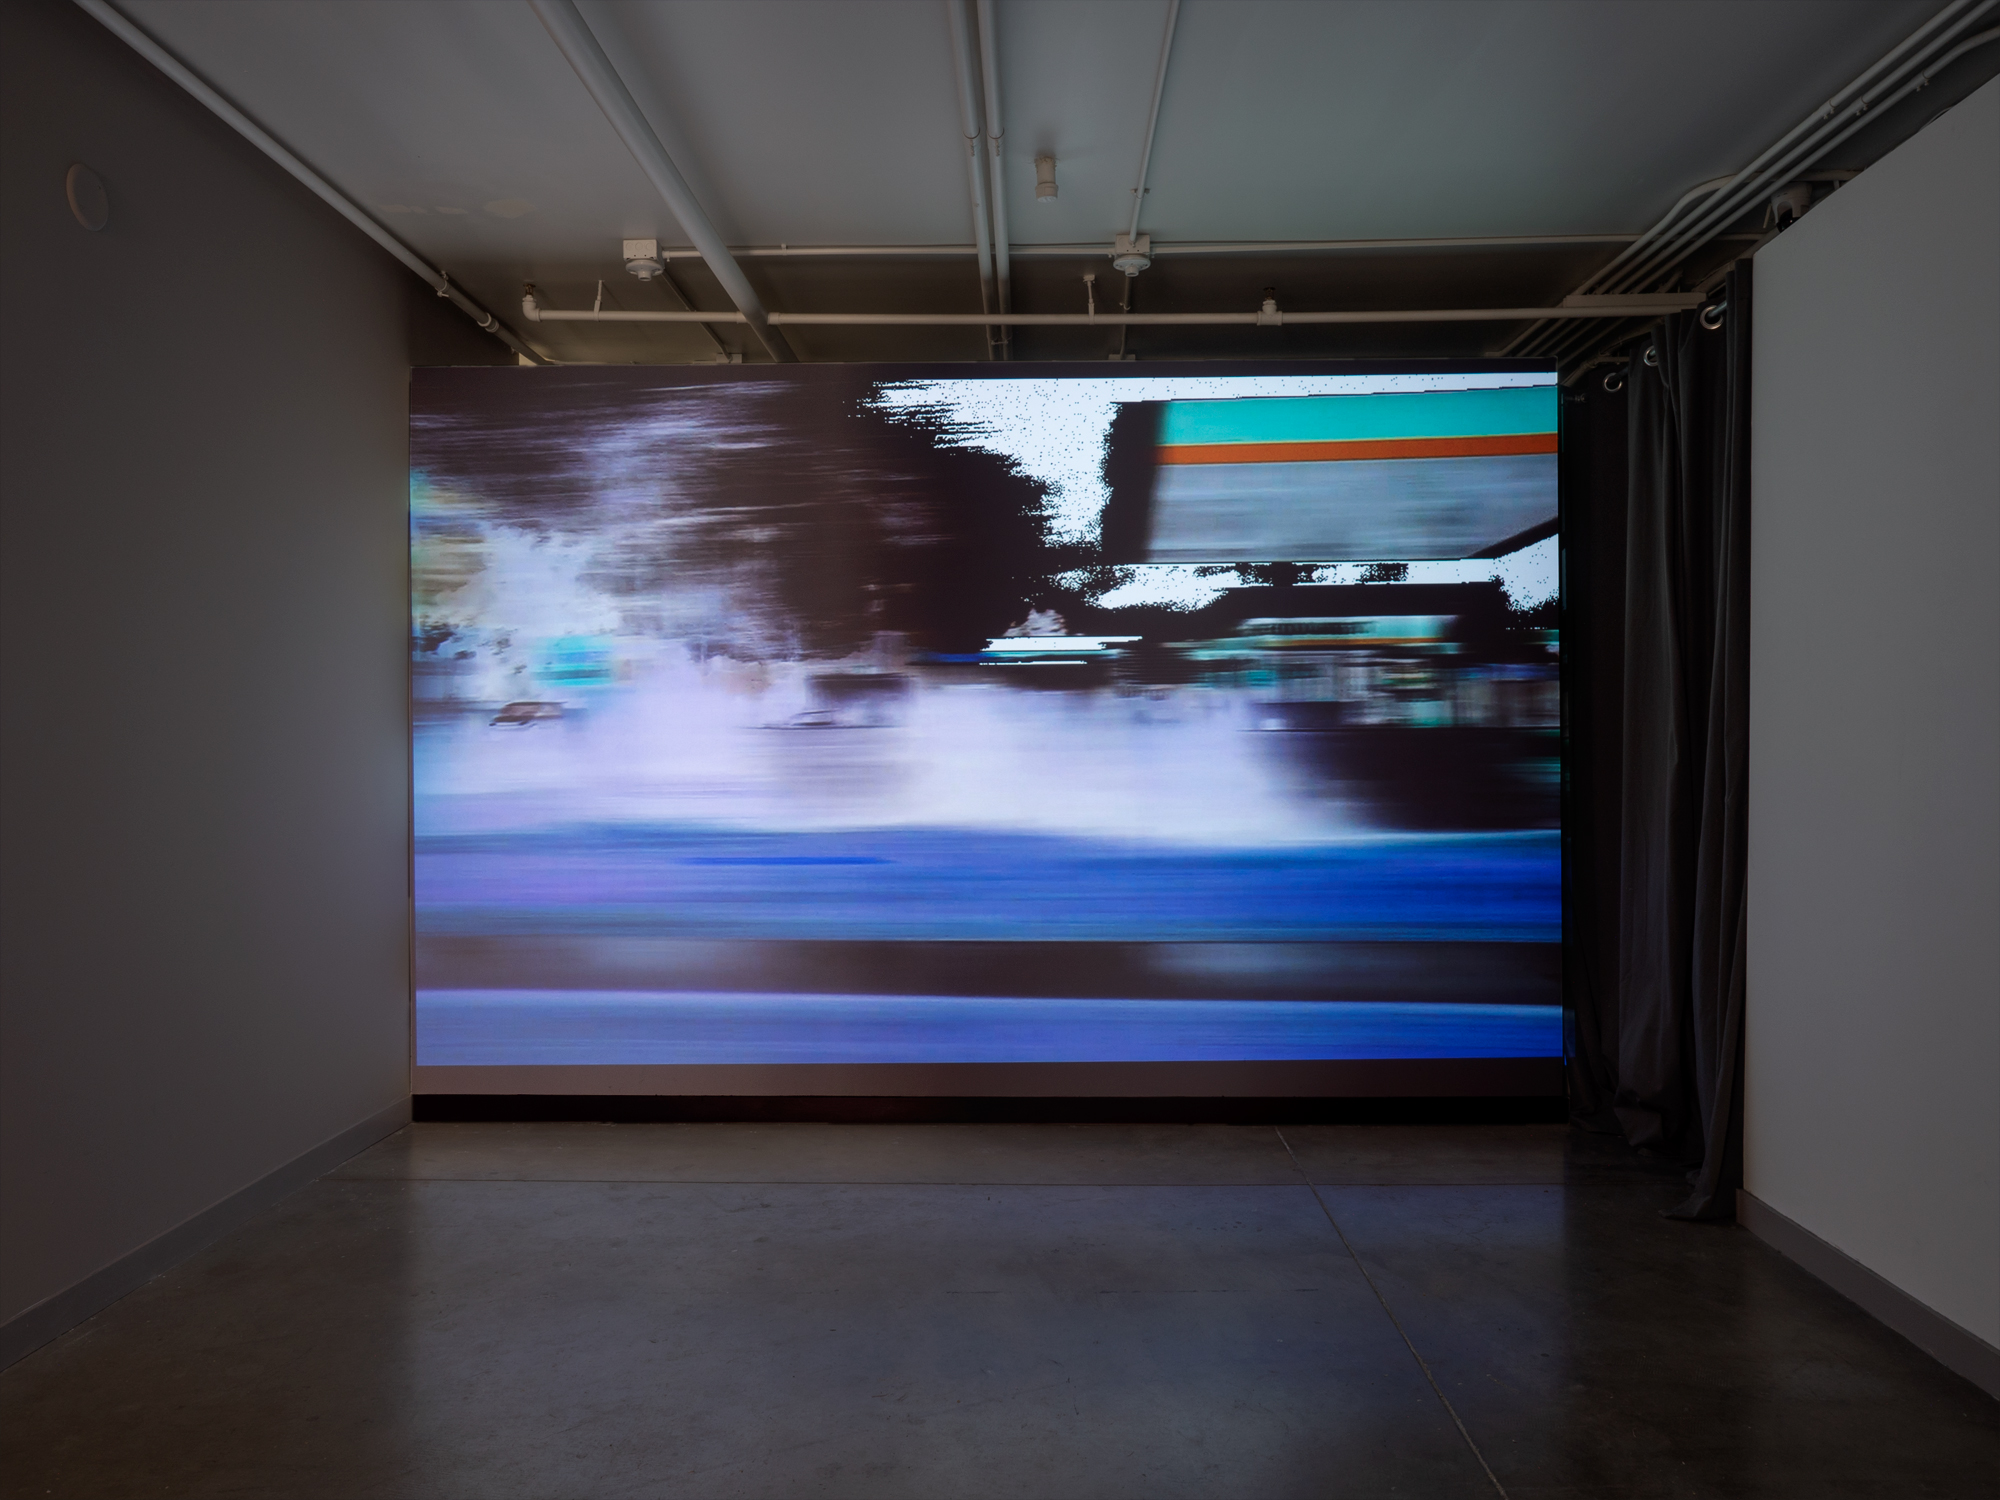 Main by Car. silent video. 38min 46sec. installation view. 2019.